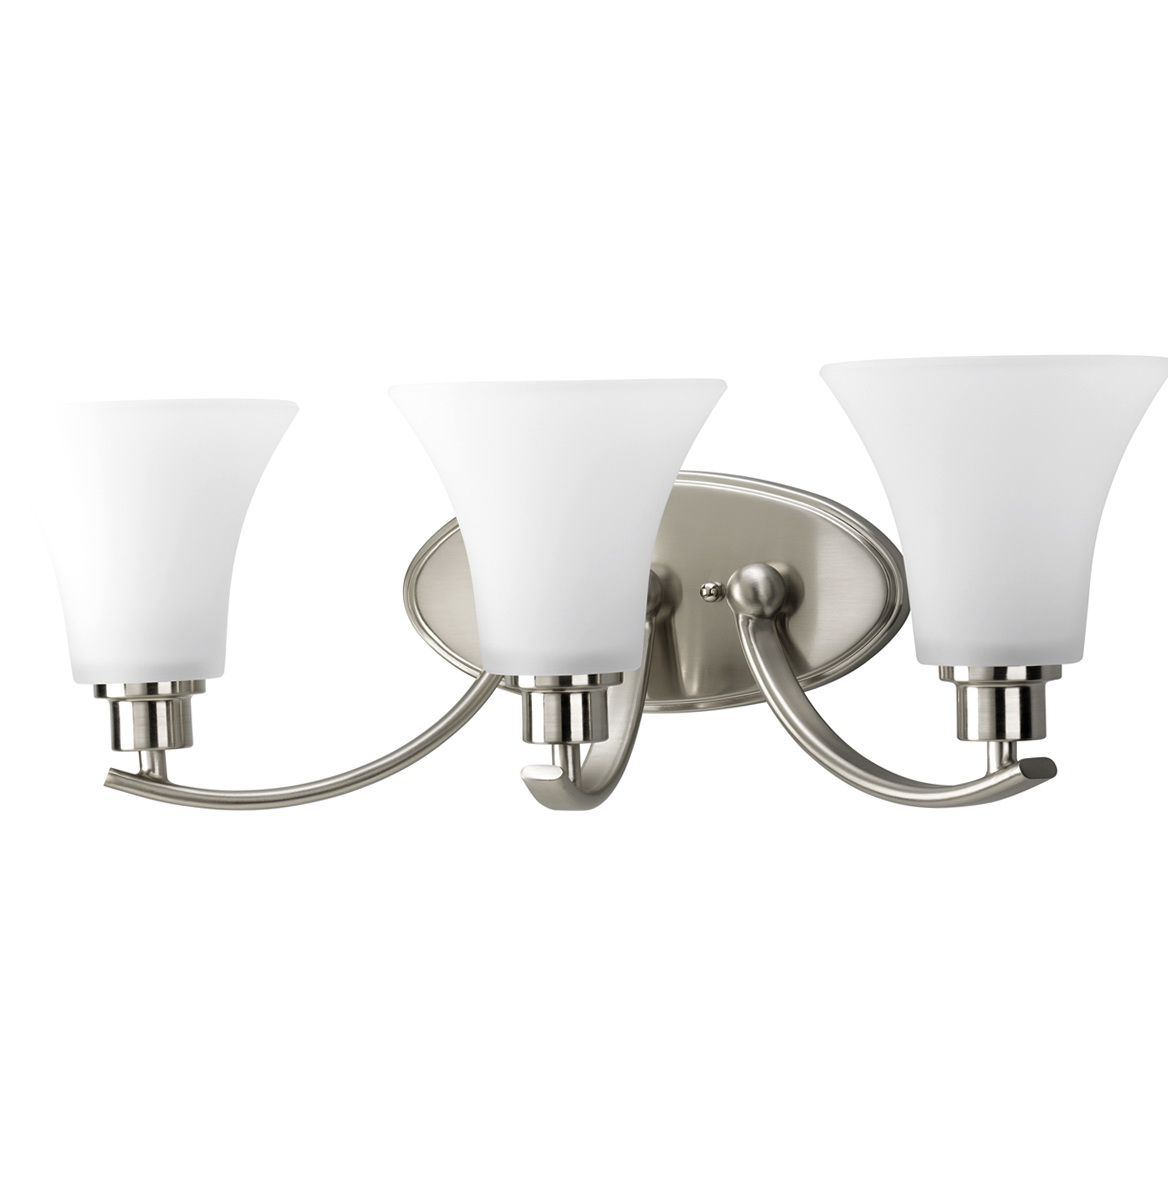 Home Depot Bathroom Lighting Brushed Nickel